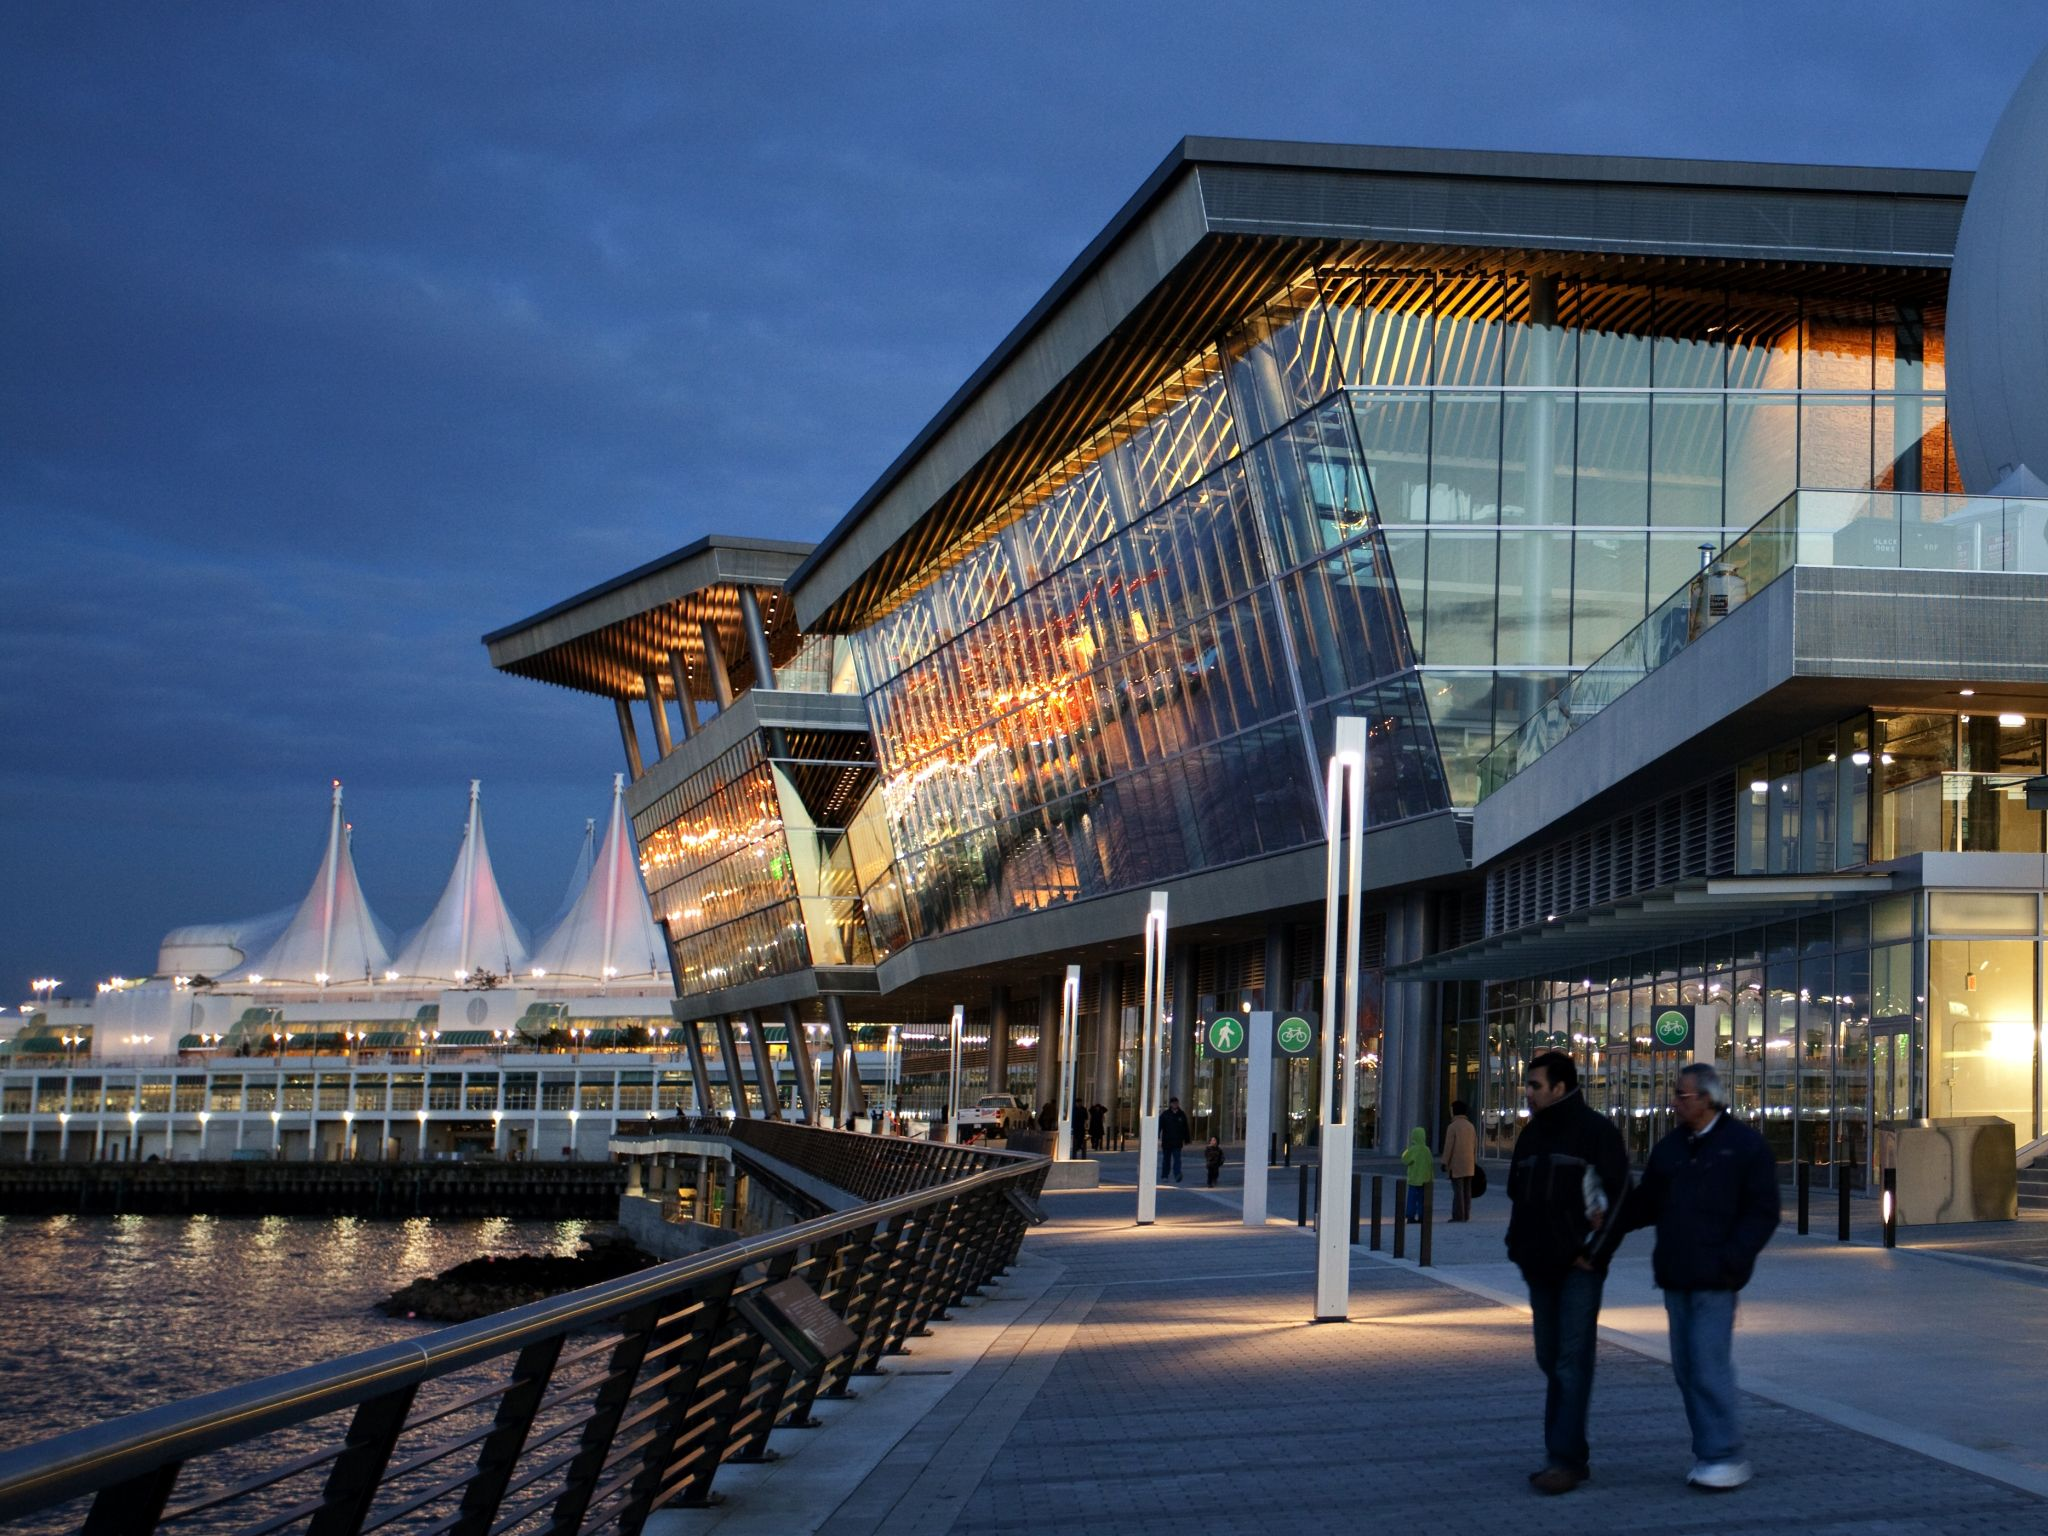 The Vancouver Convention Centre West was certifi ed LEED Platinum by the Canada Green Building Council (CaGBC). The project features extensive use of natural daylighting and ventilation. Photo courtesy LMN Architects